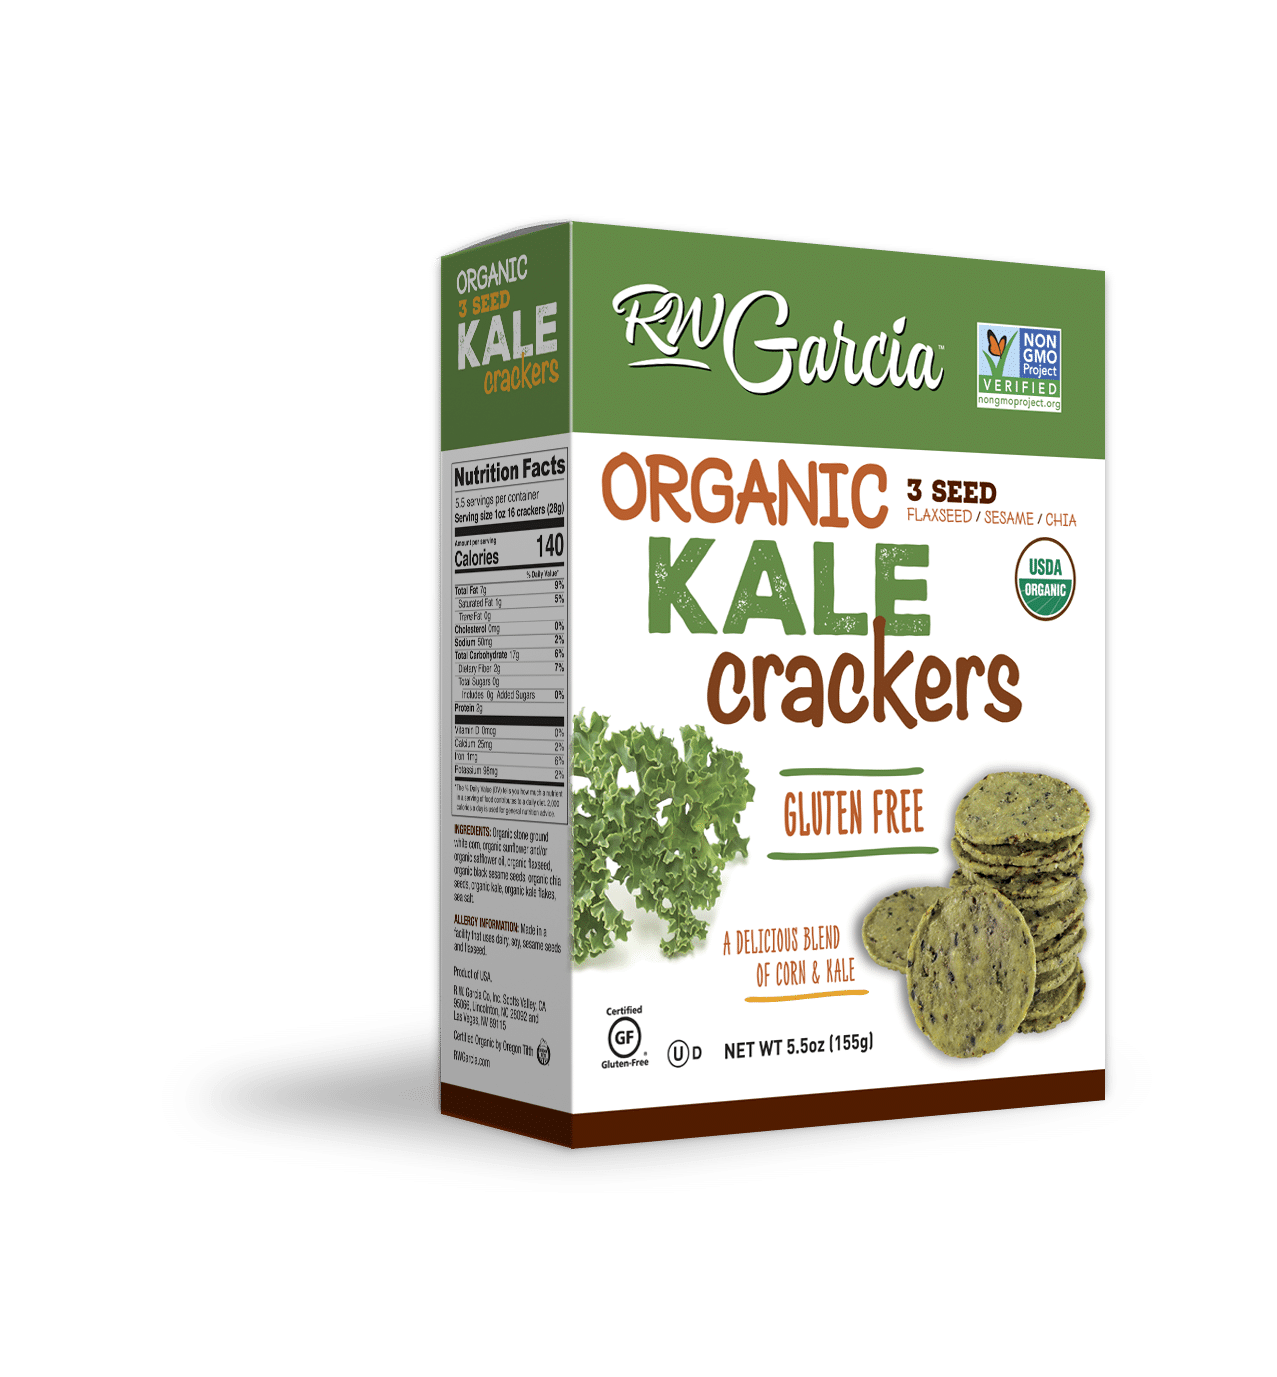 RWG_Kale_Cracker_Org_5.5oz_3D_121819